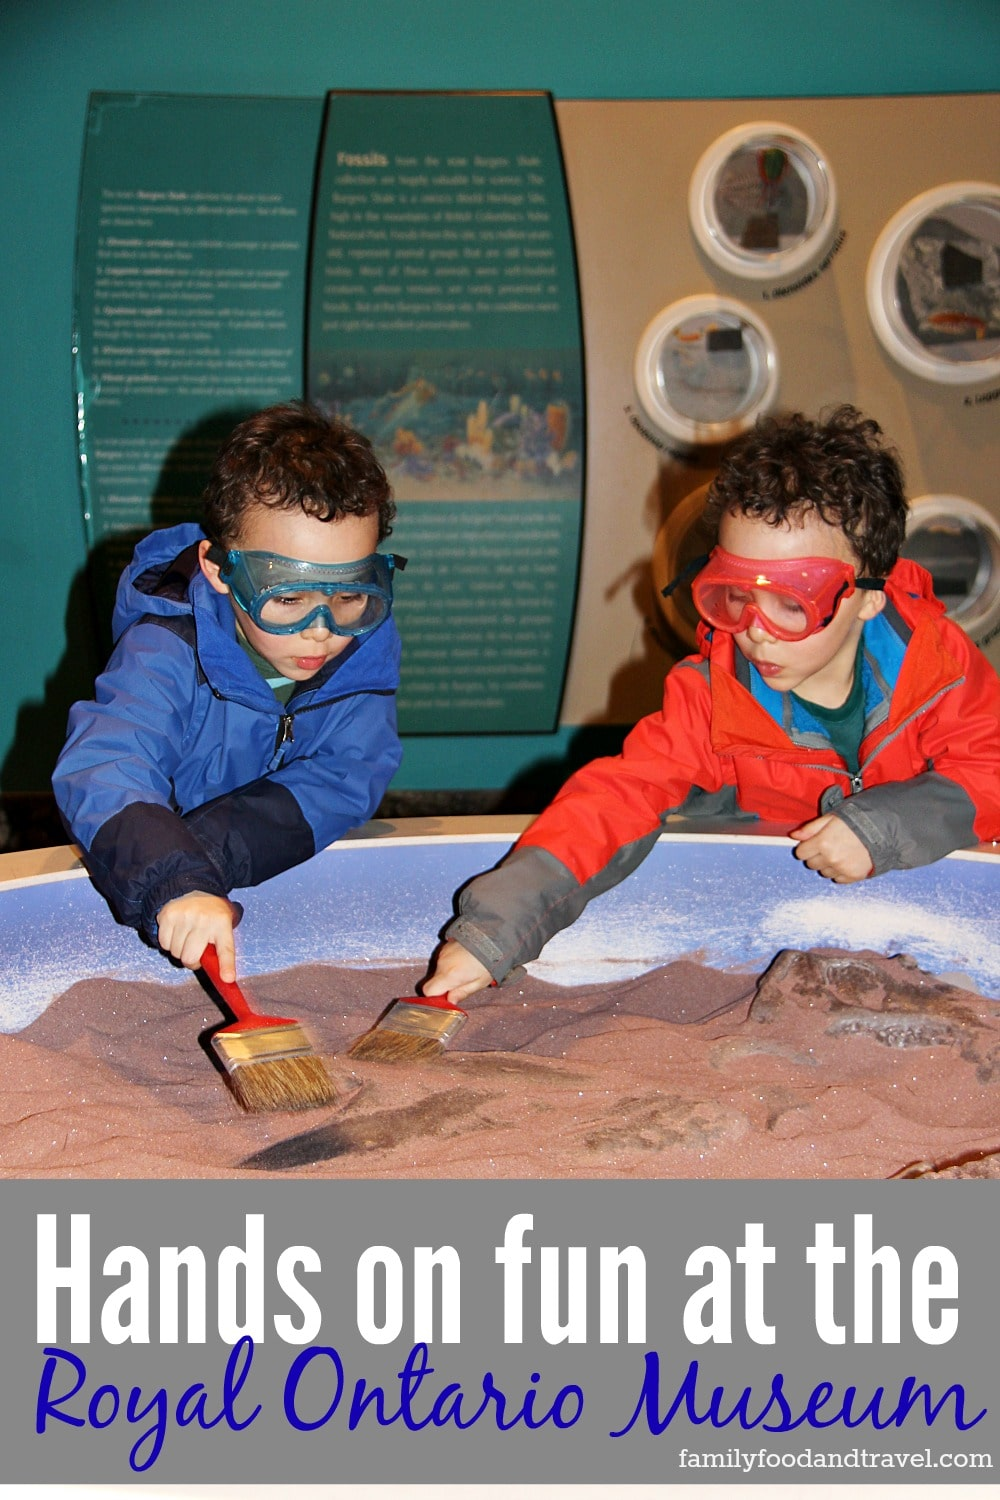 Hands on fun at the Royal Ontario Museum